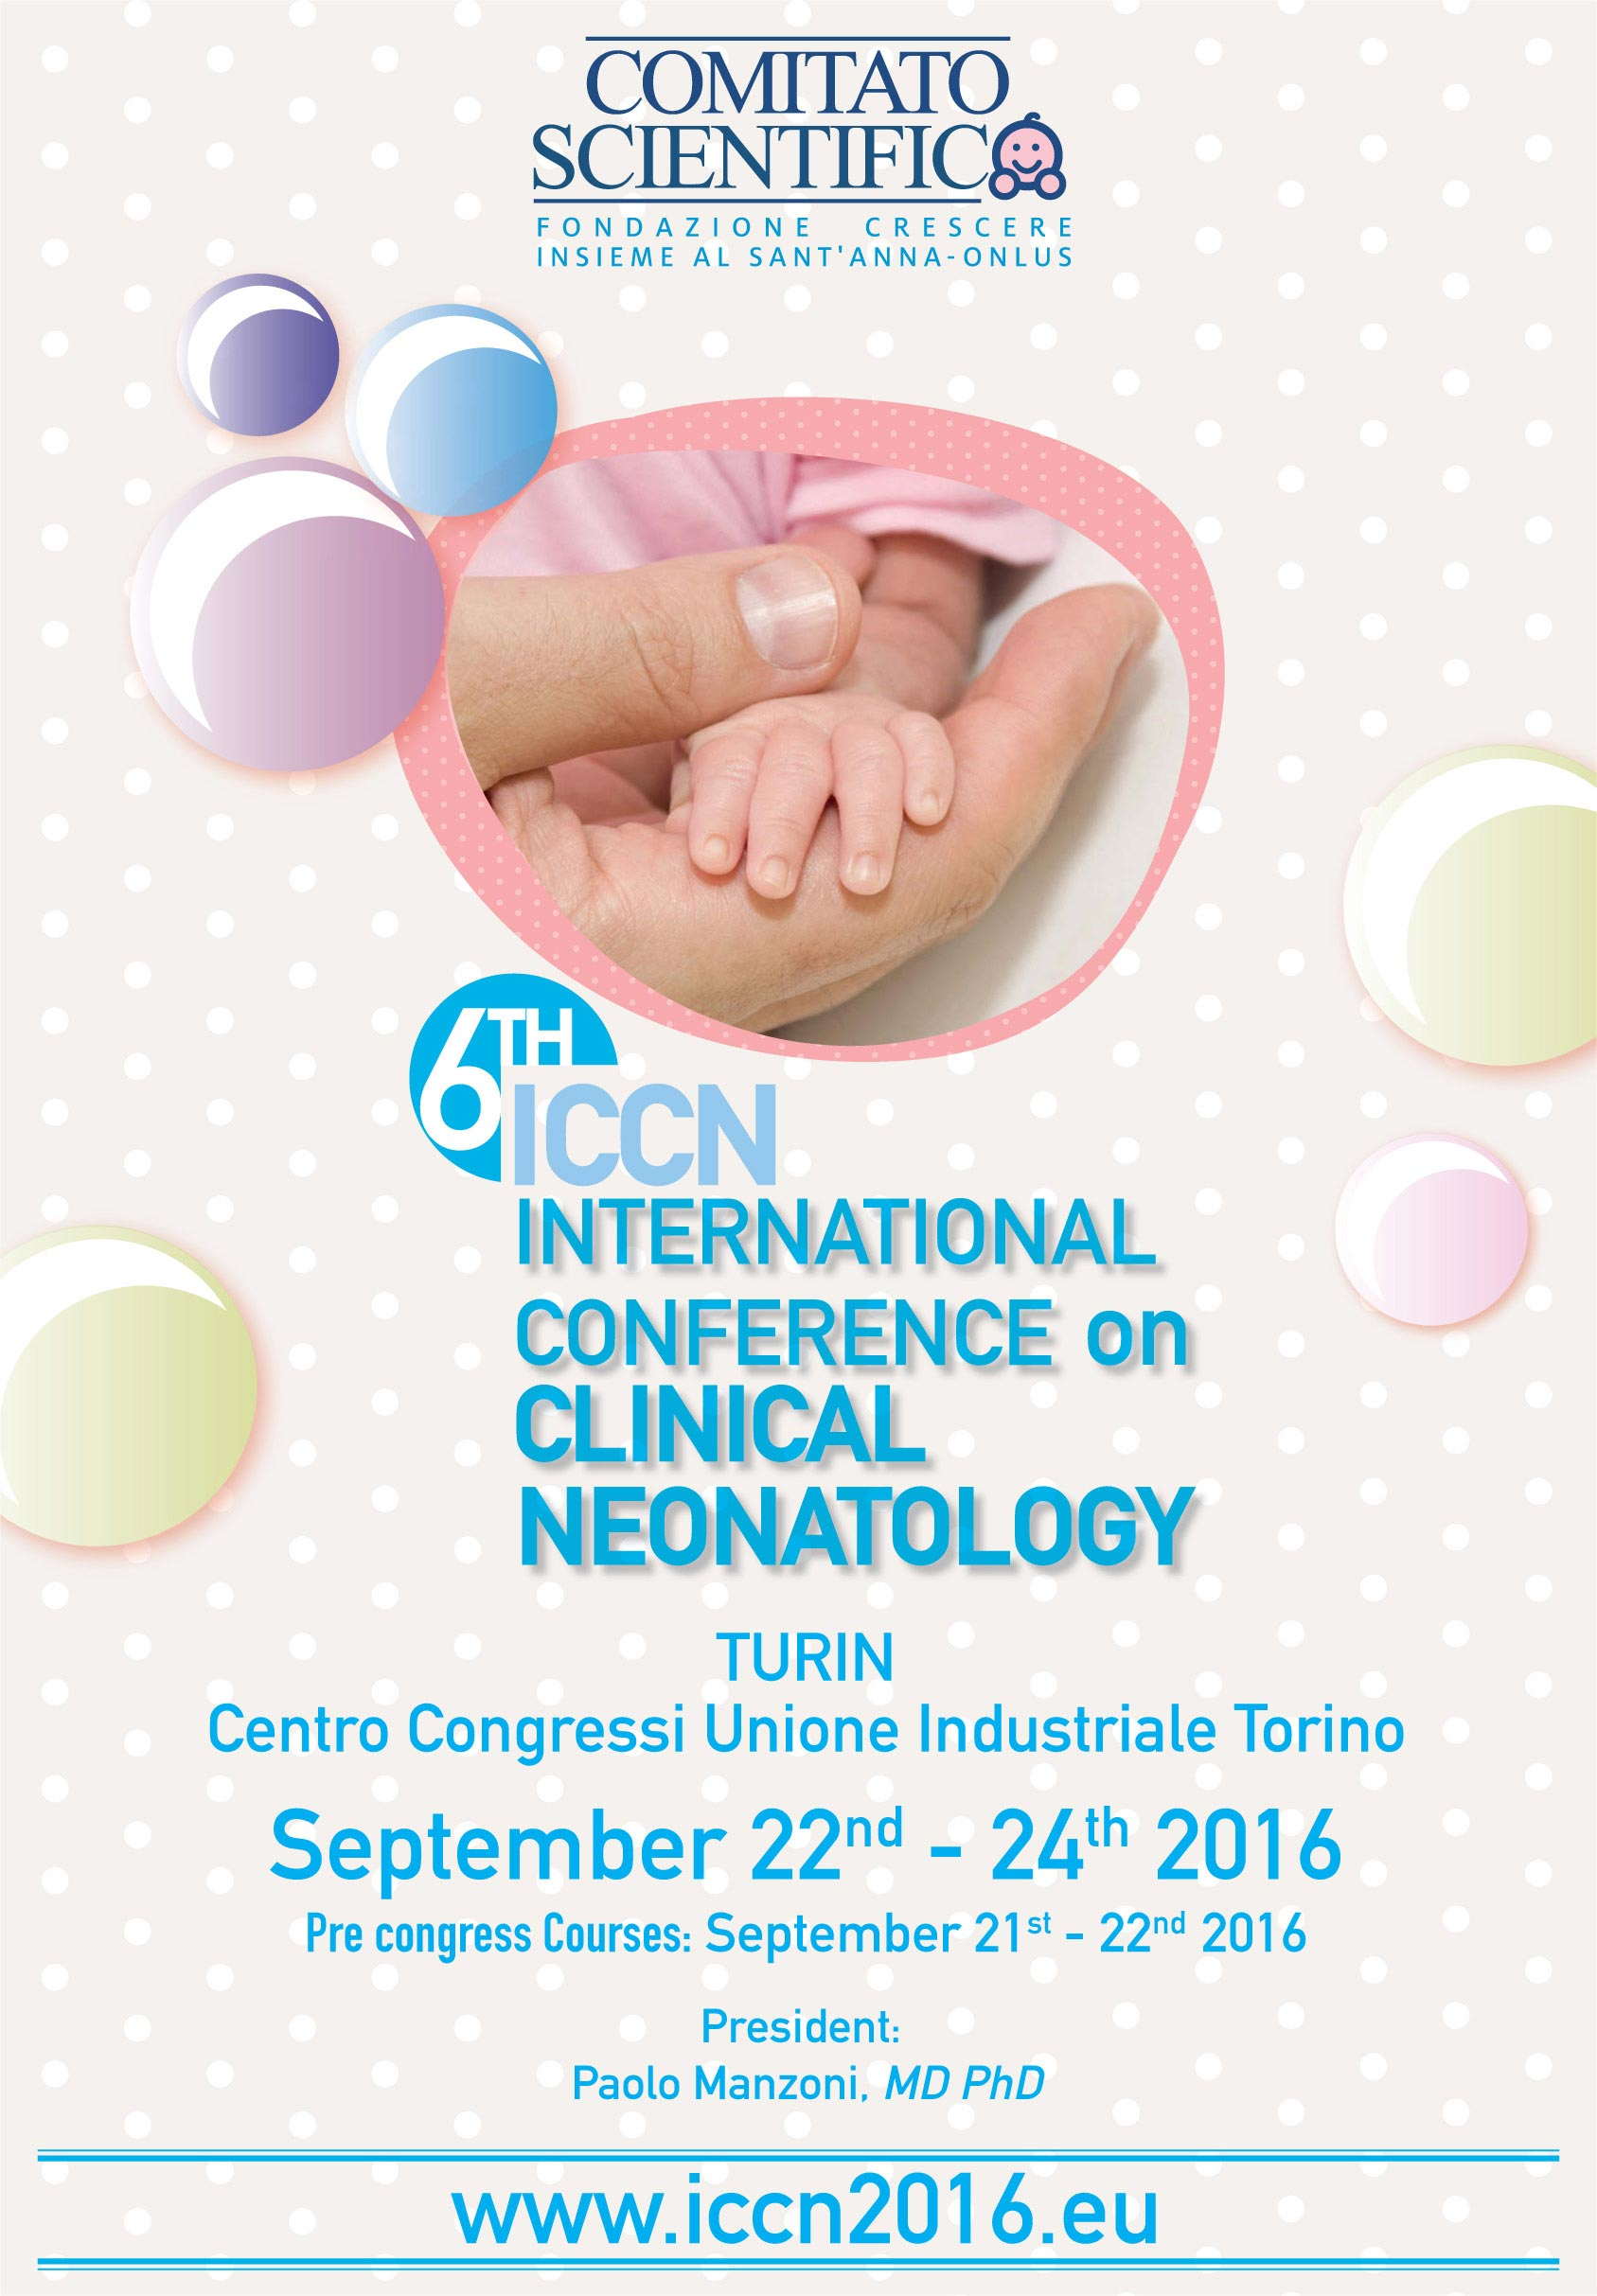 6th International Conference On Clinical Neonatology